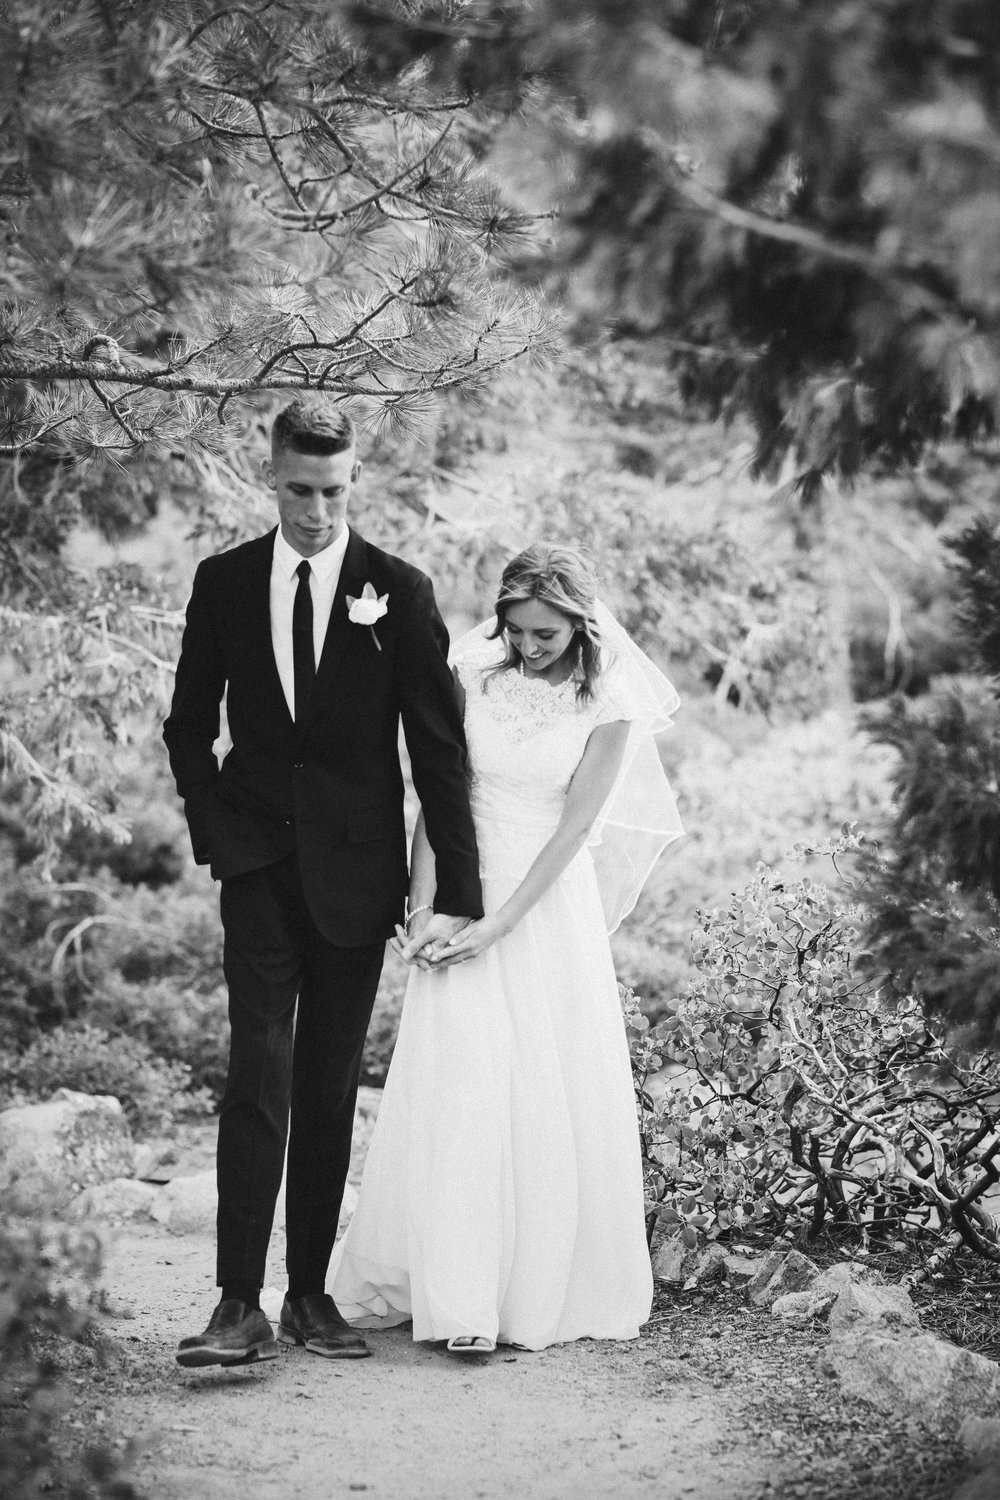 _P8A0427vildphotography-adventurewedding-adventurouswedding-tahoewedding-laketahoewedding-adventureelopement-laketahoeweddingphotographer-wedding-photographer-weddingphotographer-Chase-Sam.jpg